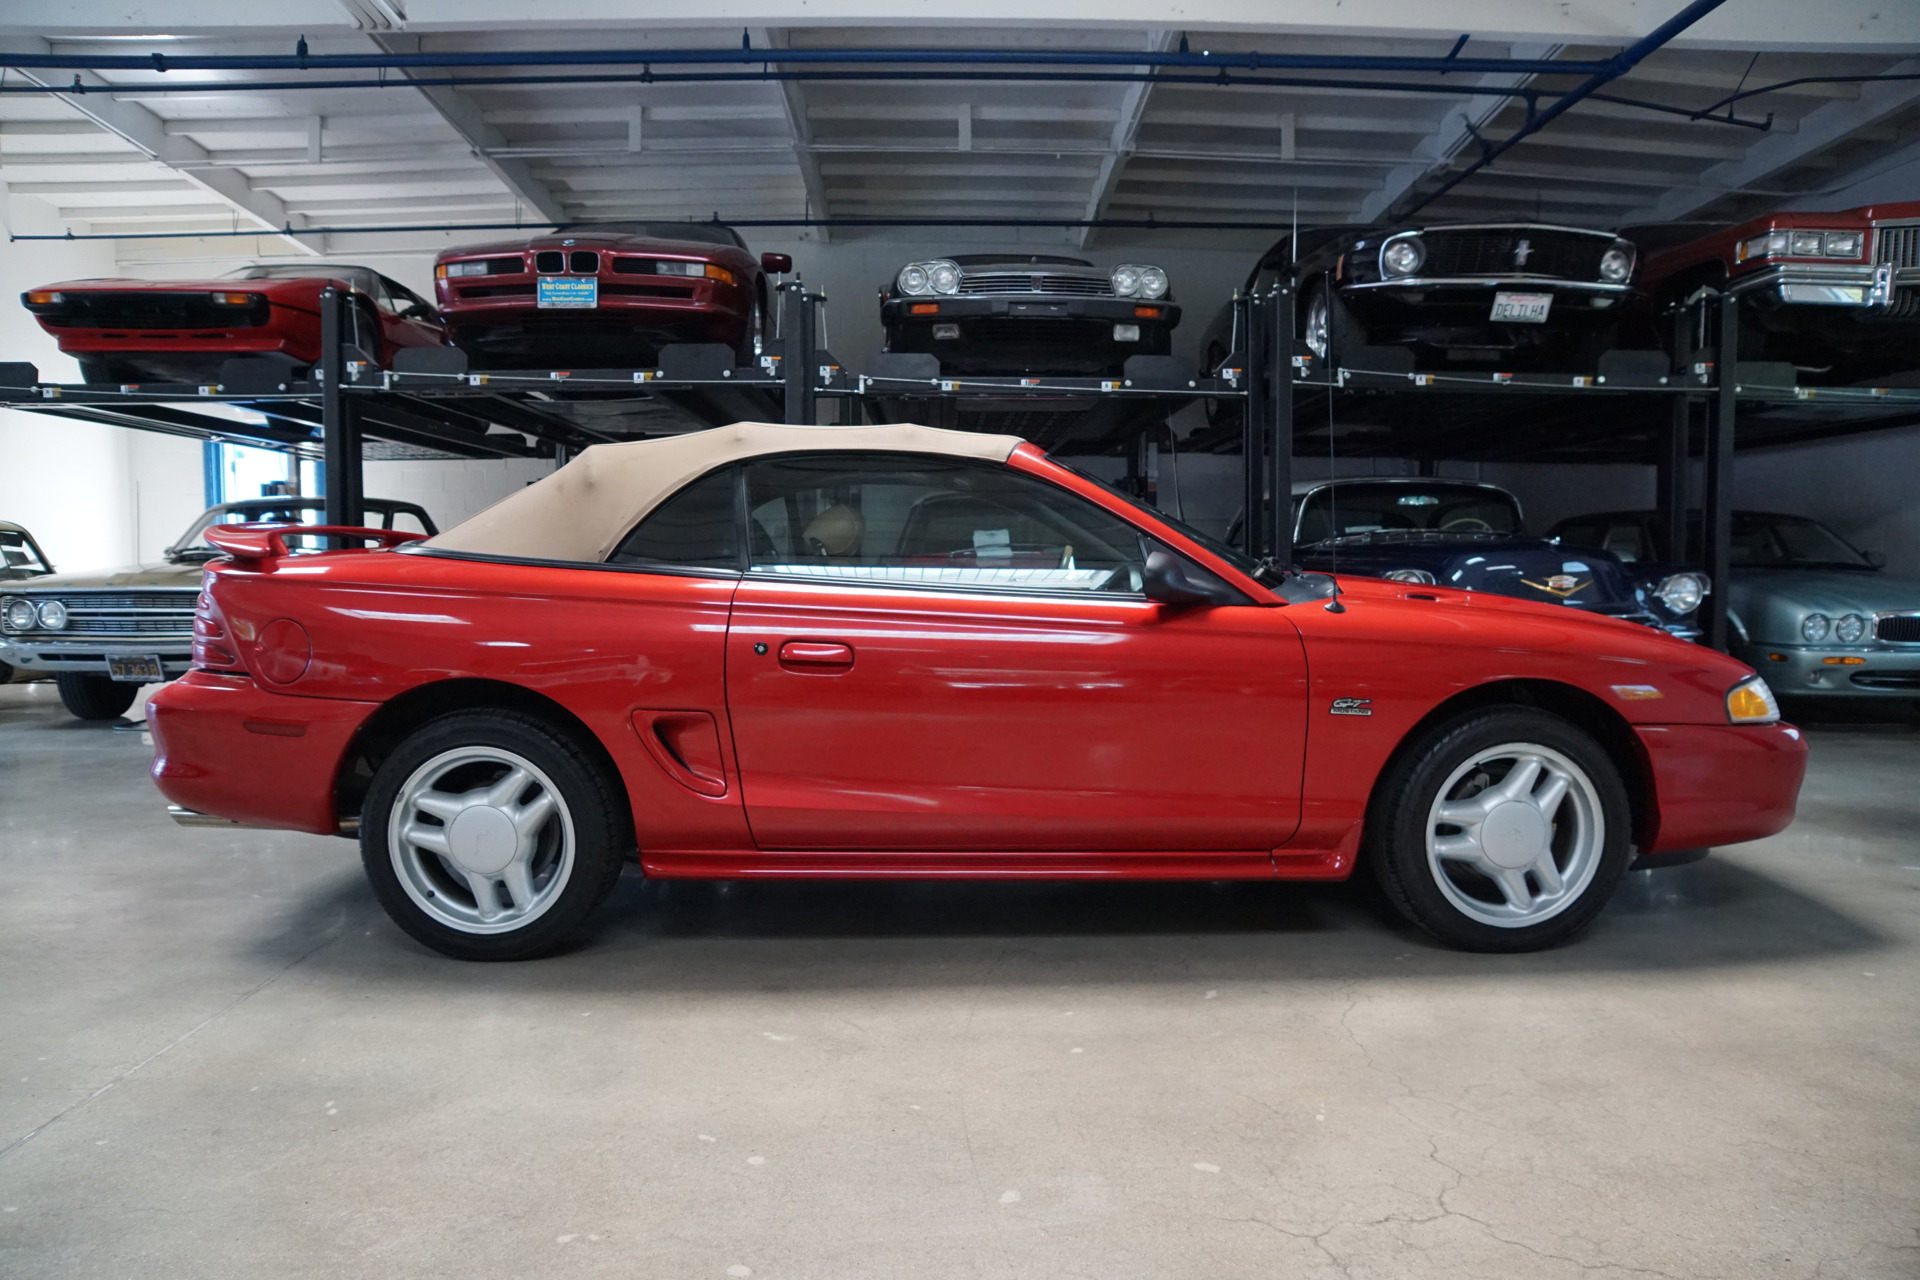 1995 ford mustang gt 5 0l v8 convertible gt stock 136. Black Bedroom Furniture Sets. Home Design Ideas